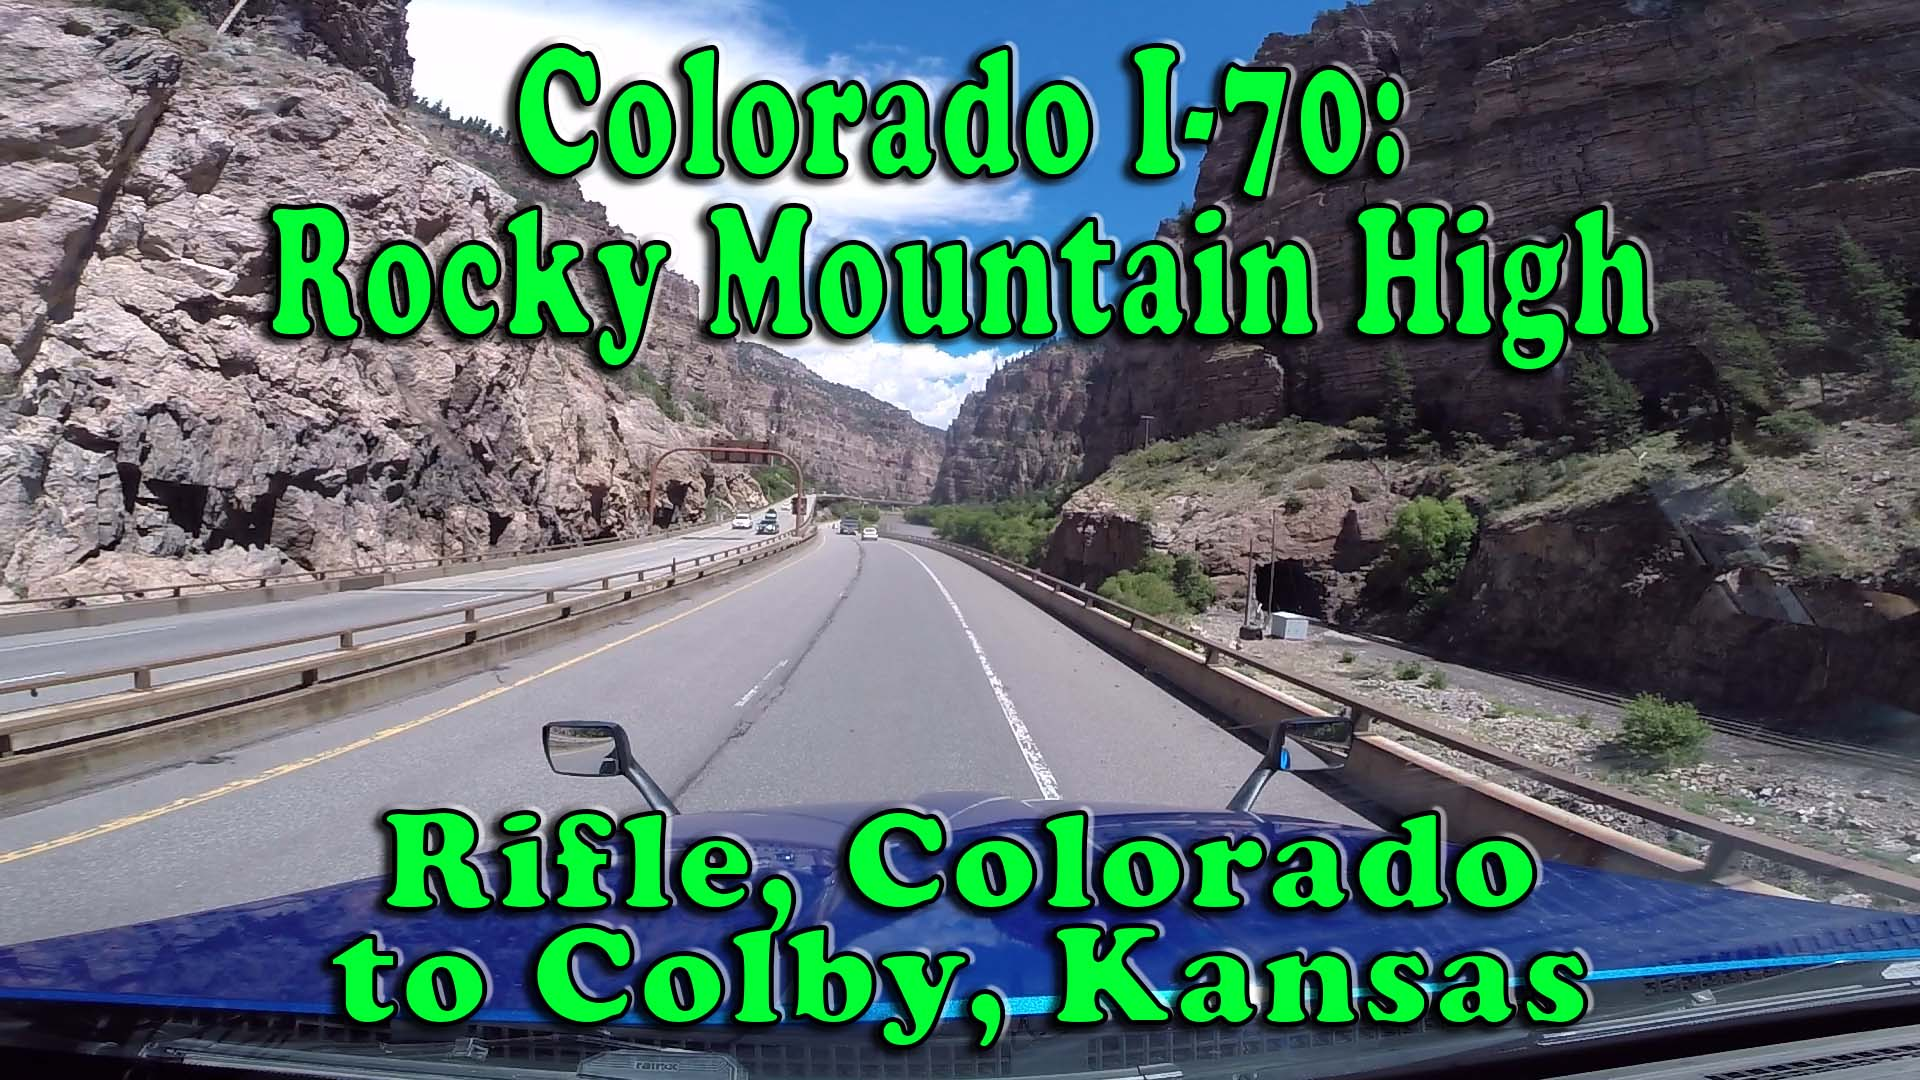 Interstate Trucking Reviews >> Colorado I-70: Rocky Mountain High - Rifle, CO to Colby ...